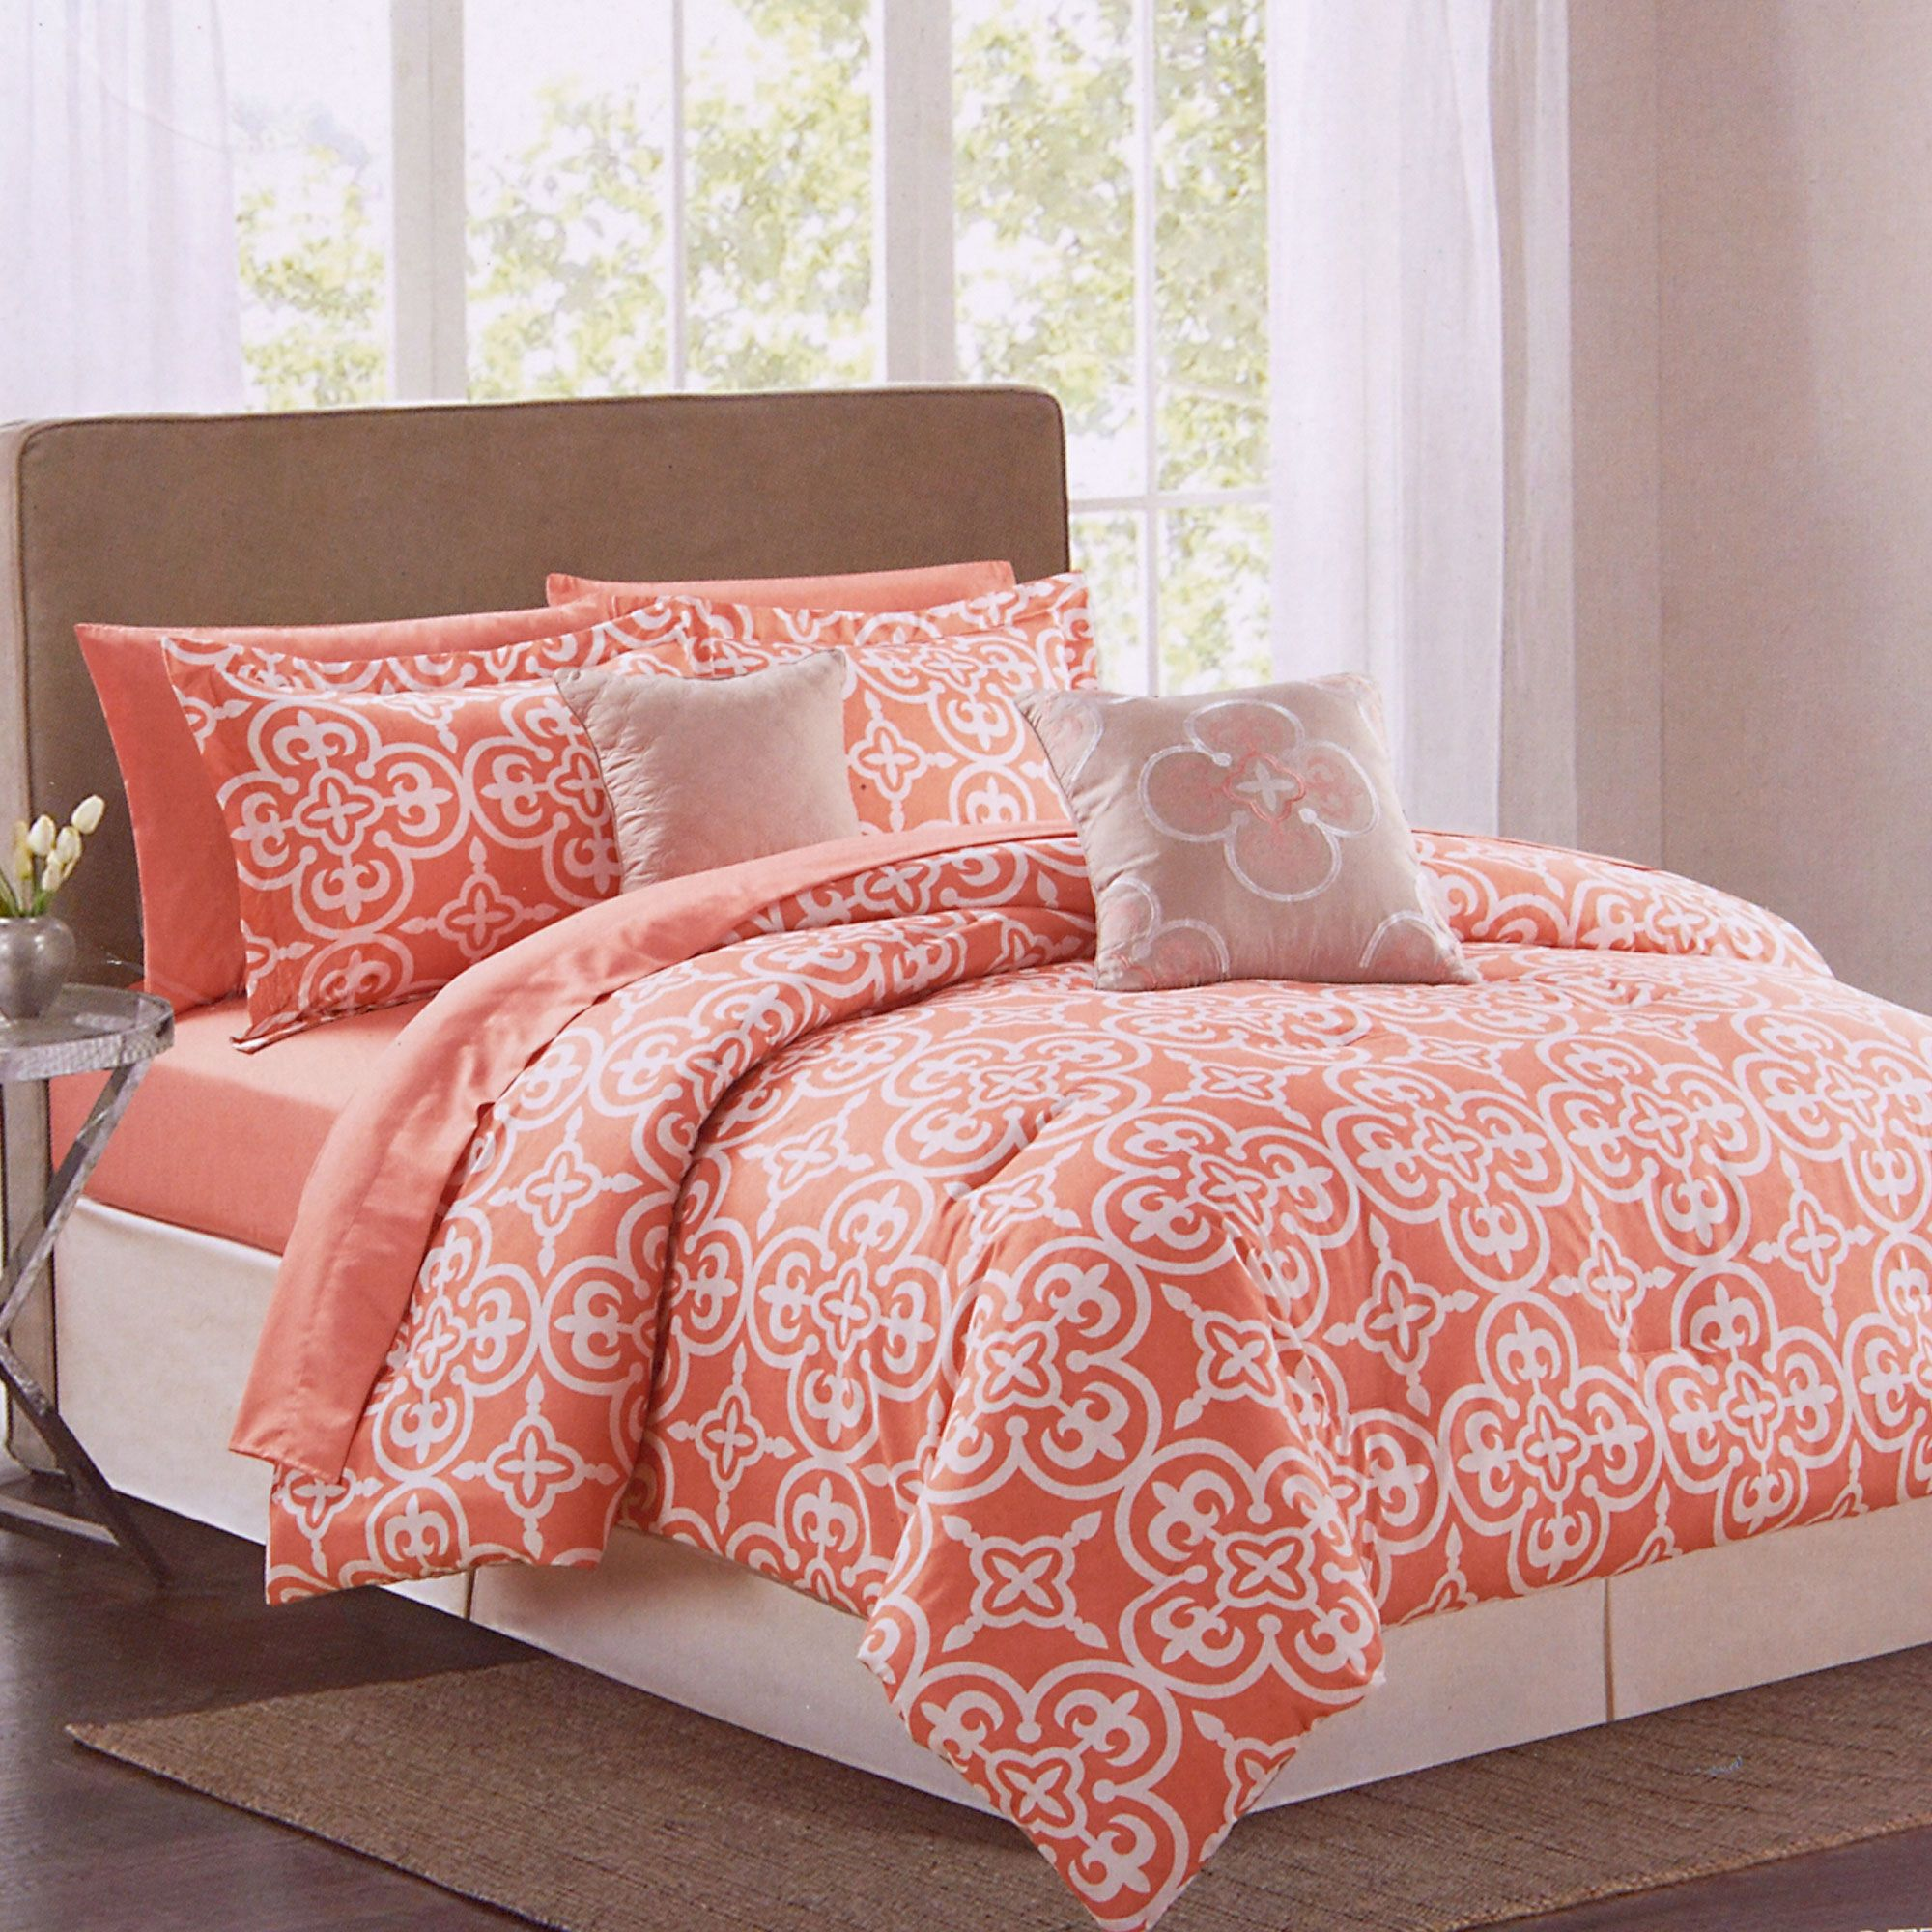 9 Piece Pottia Bedding Set Coral King